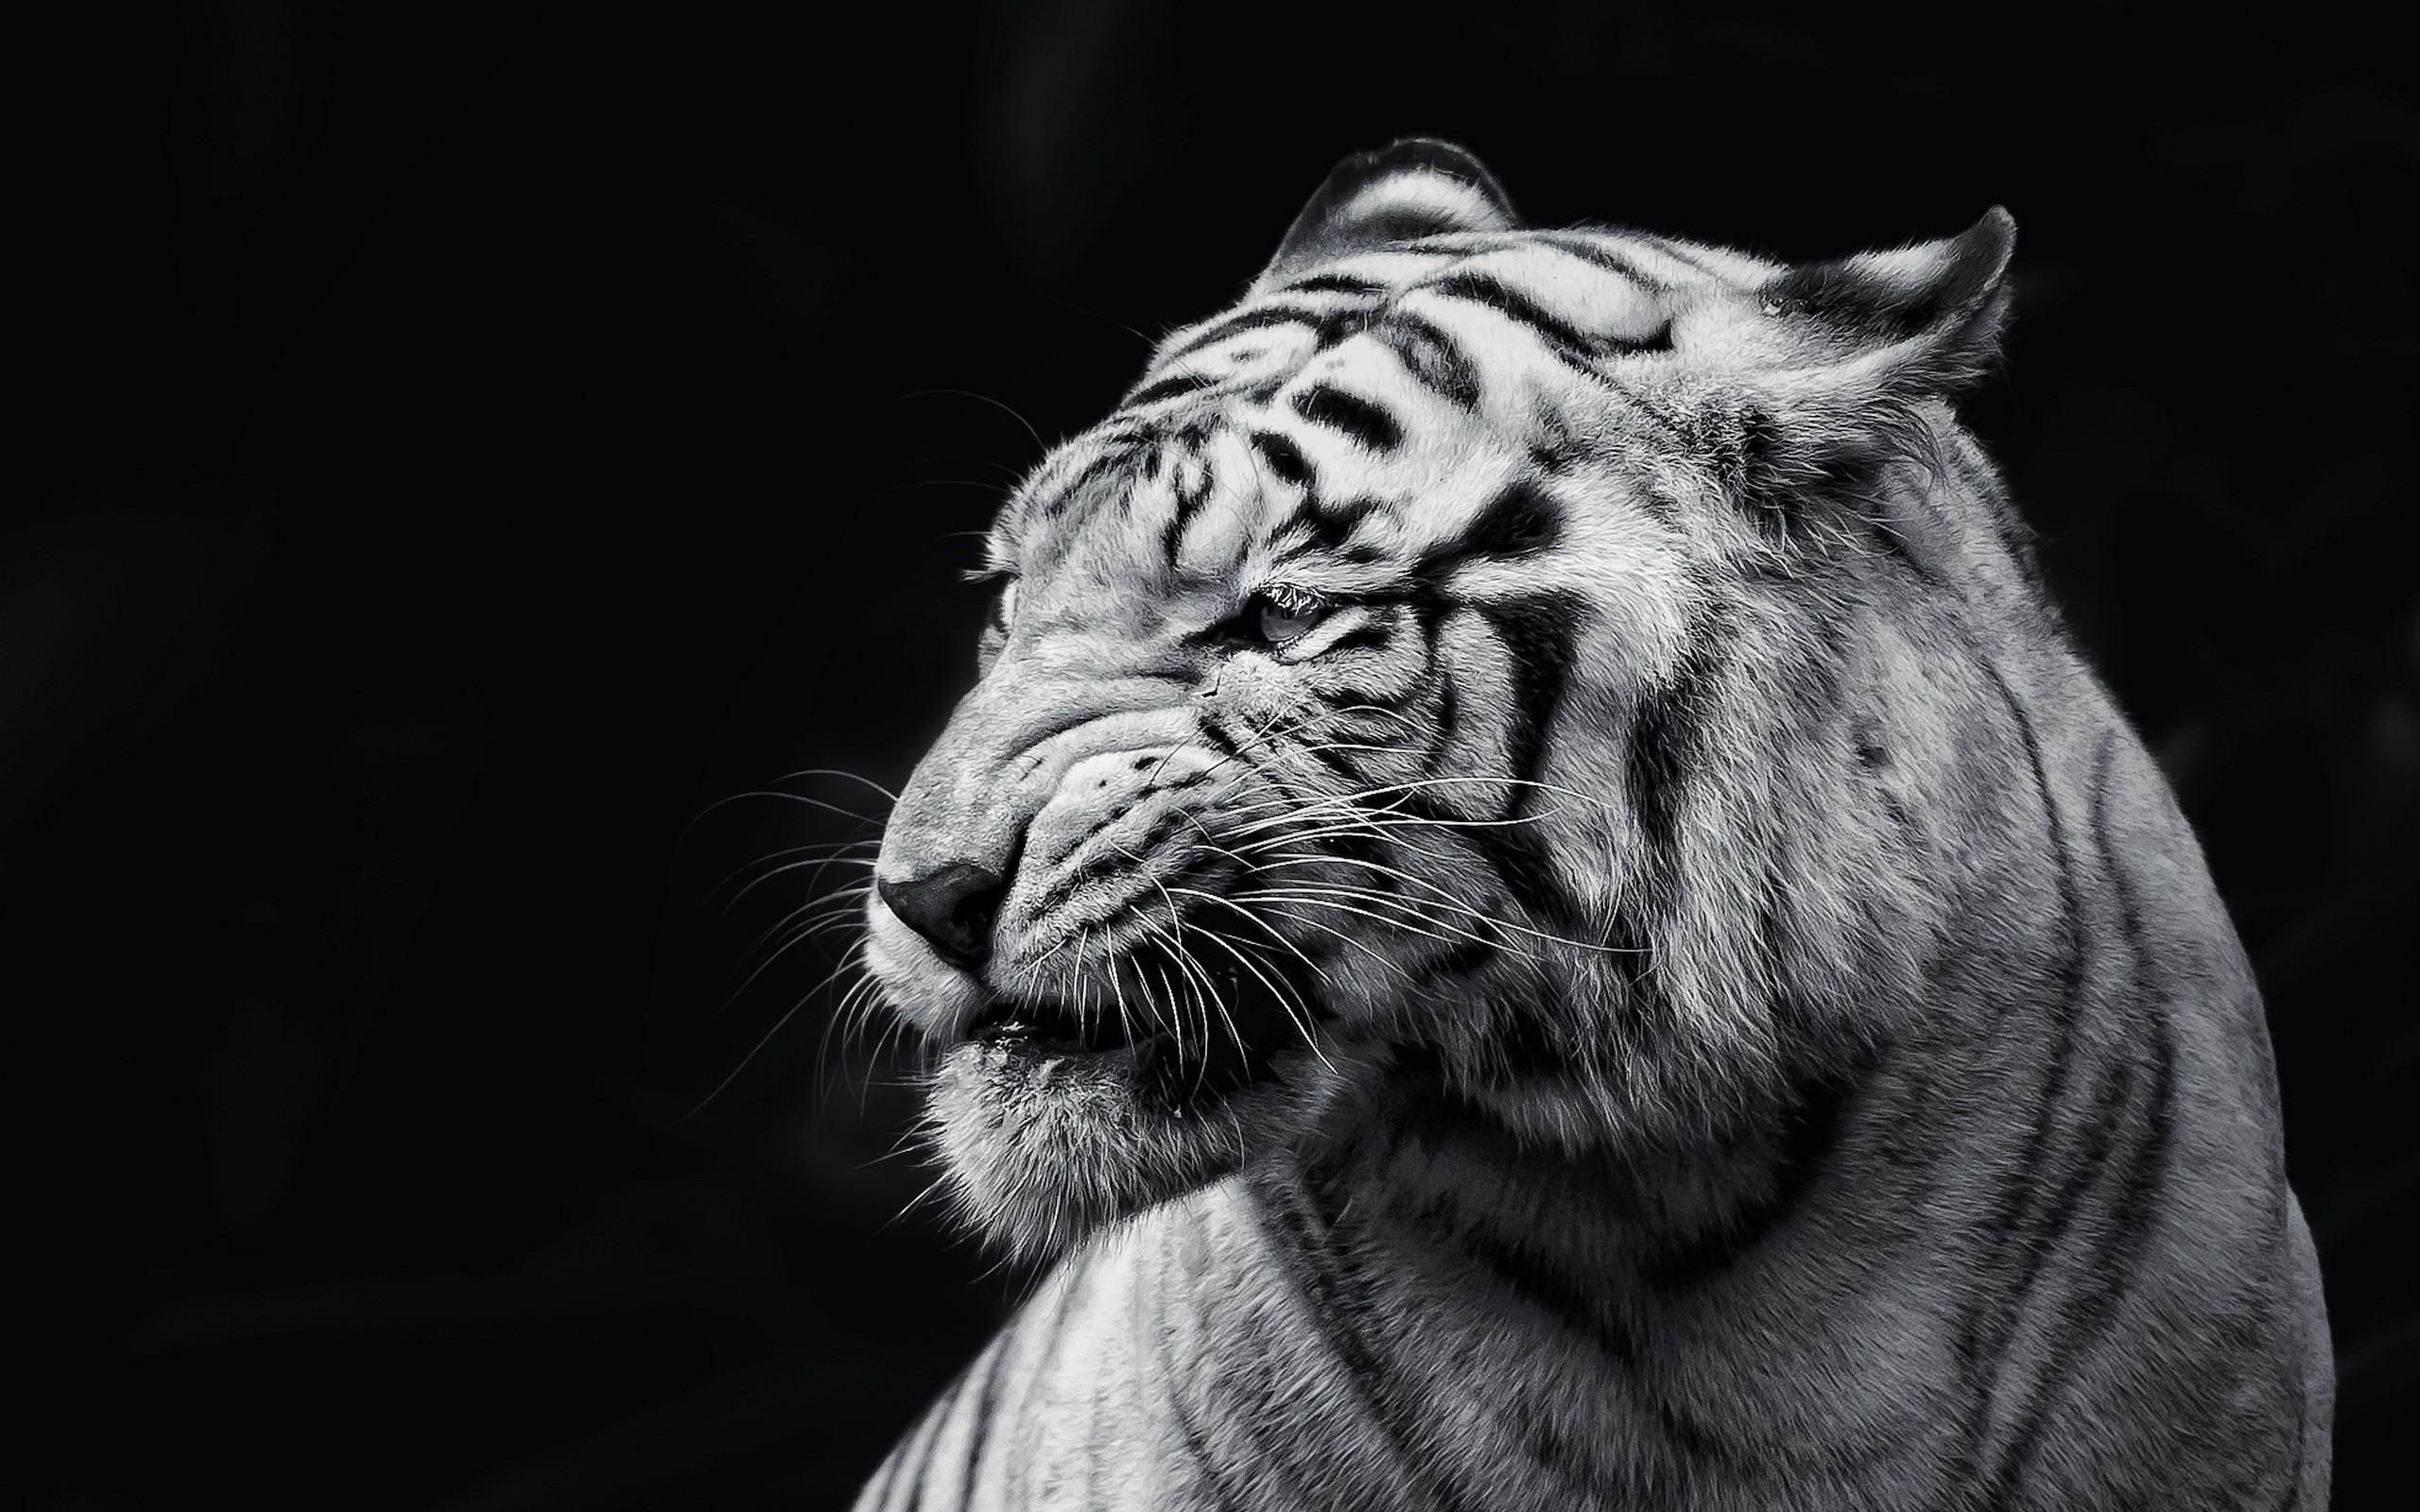 Lion Black And White Wallpapers 1080p On Wallpaper 1080p Hd Tiger Wallpaper Animal Wallpaper Animals